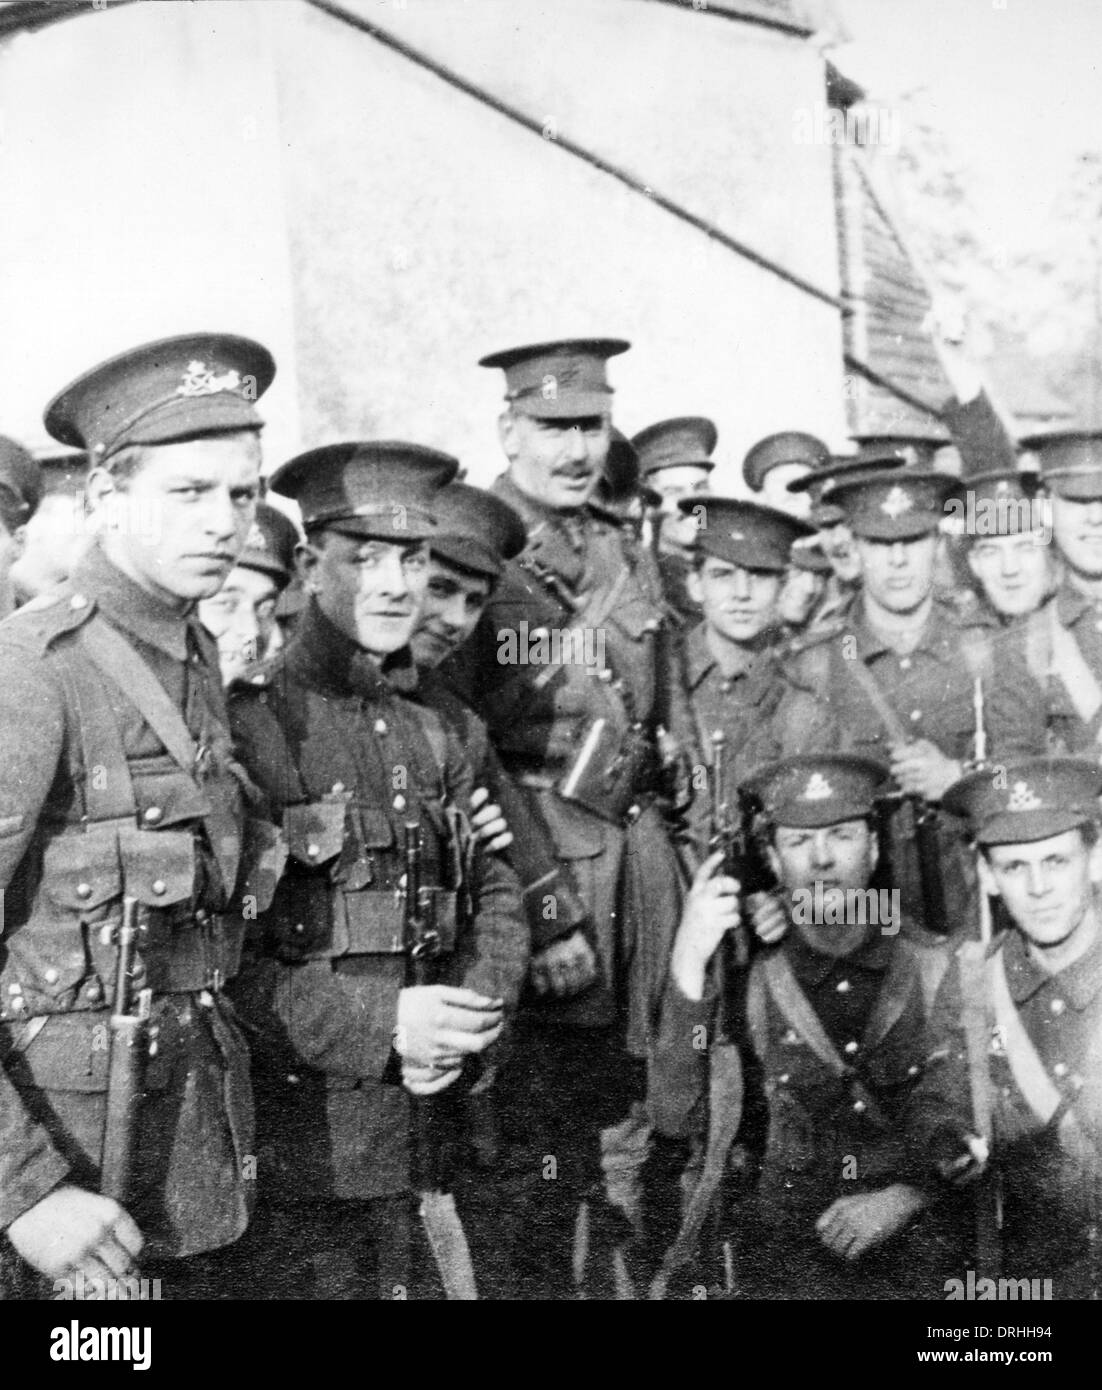 Group of British soldiers, WW1 - Stock Image